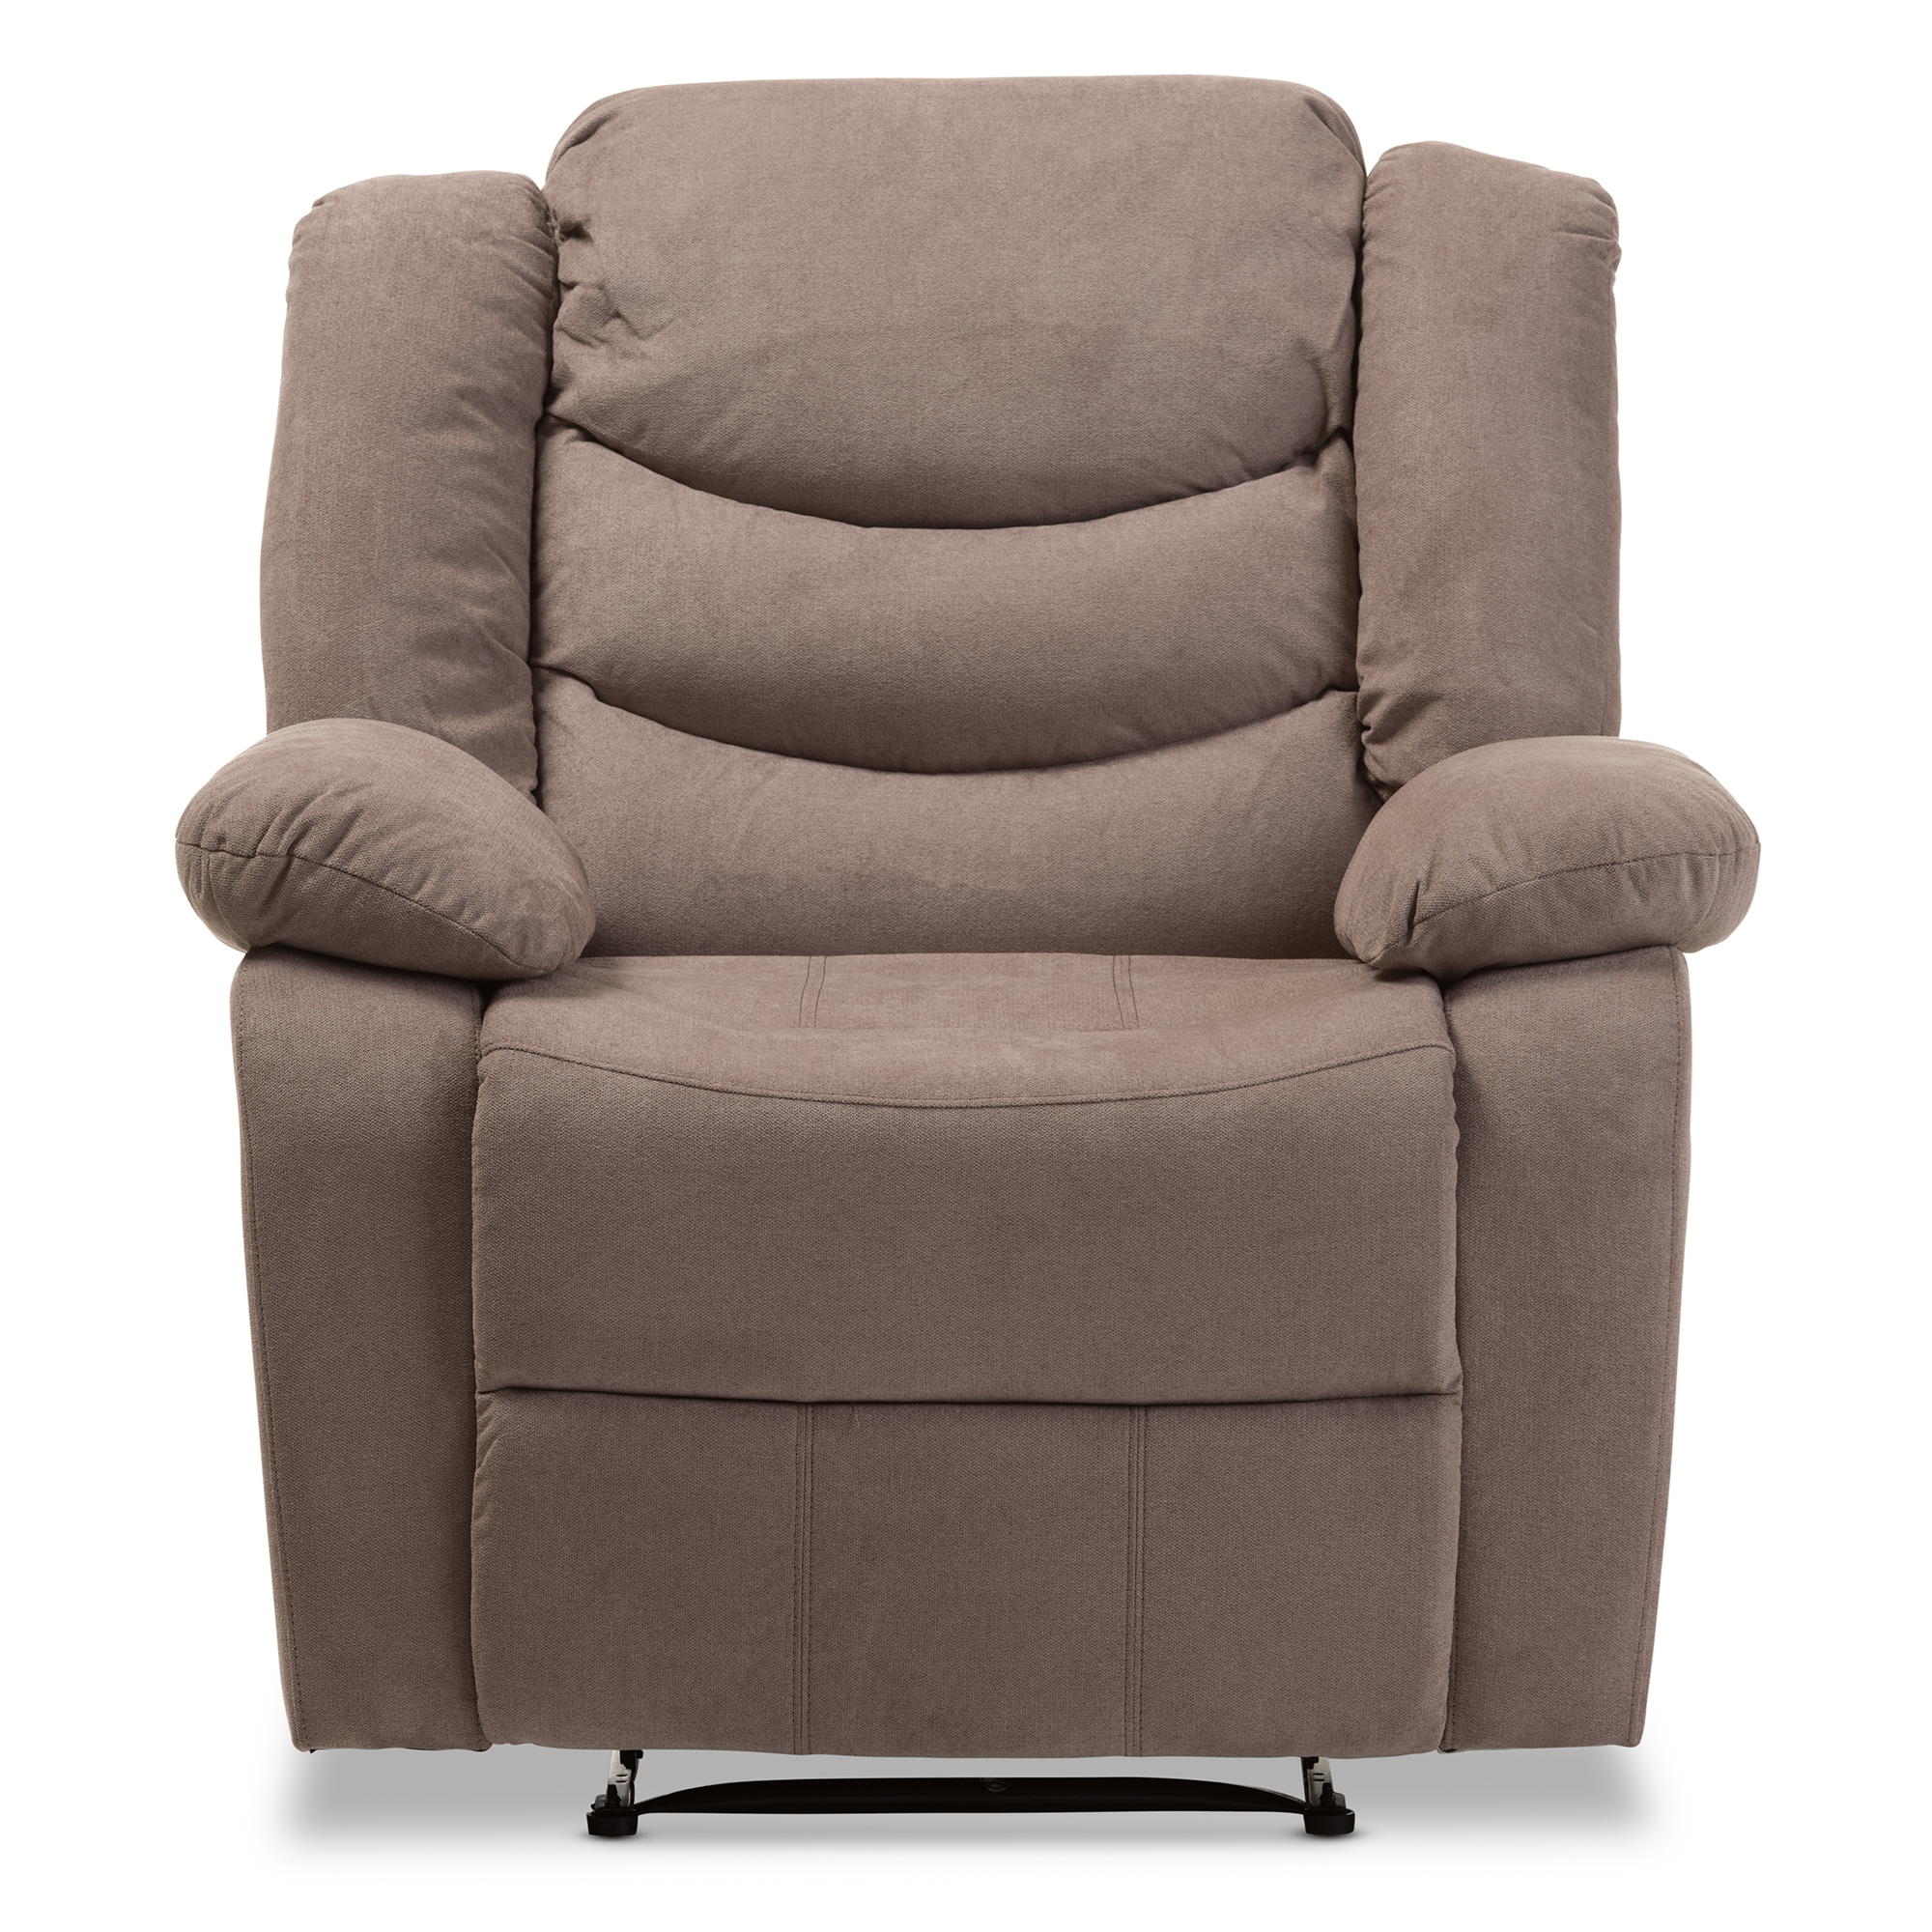 ... Baxton Studio Lynette Modern And Contemporary Taupe Fabric Power  Recliner Chair   BSOU1294X Taupe  ...